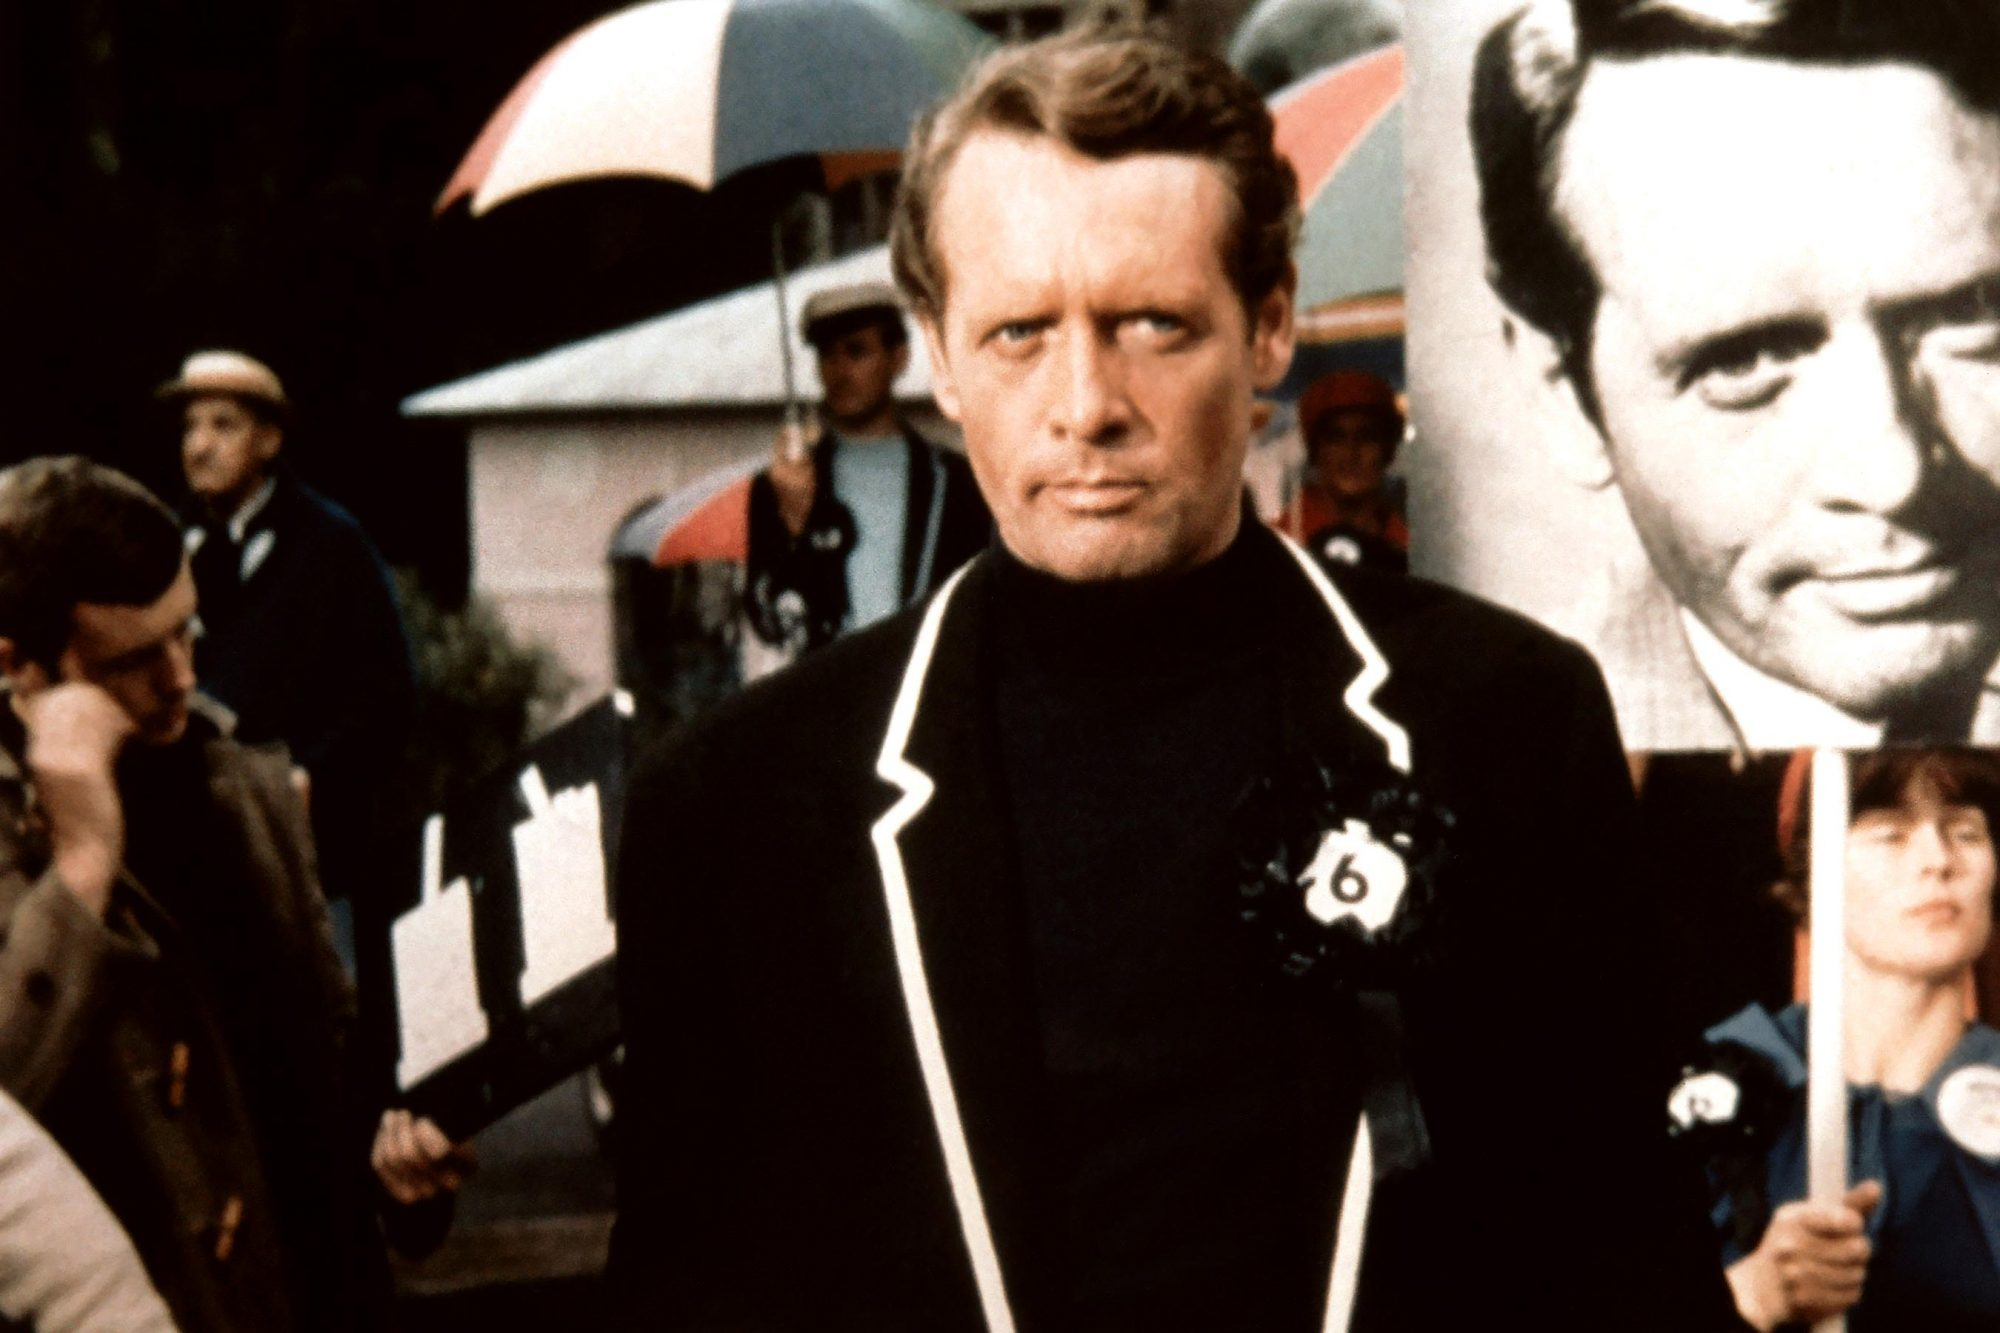 THE PRISONER, Patrick McGoohan, 'Free For All', (aired Oct. 22, 1967), 1967-68